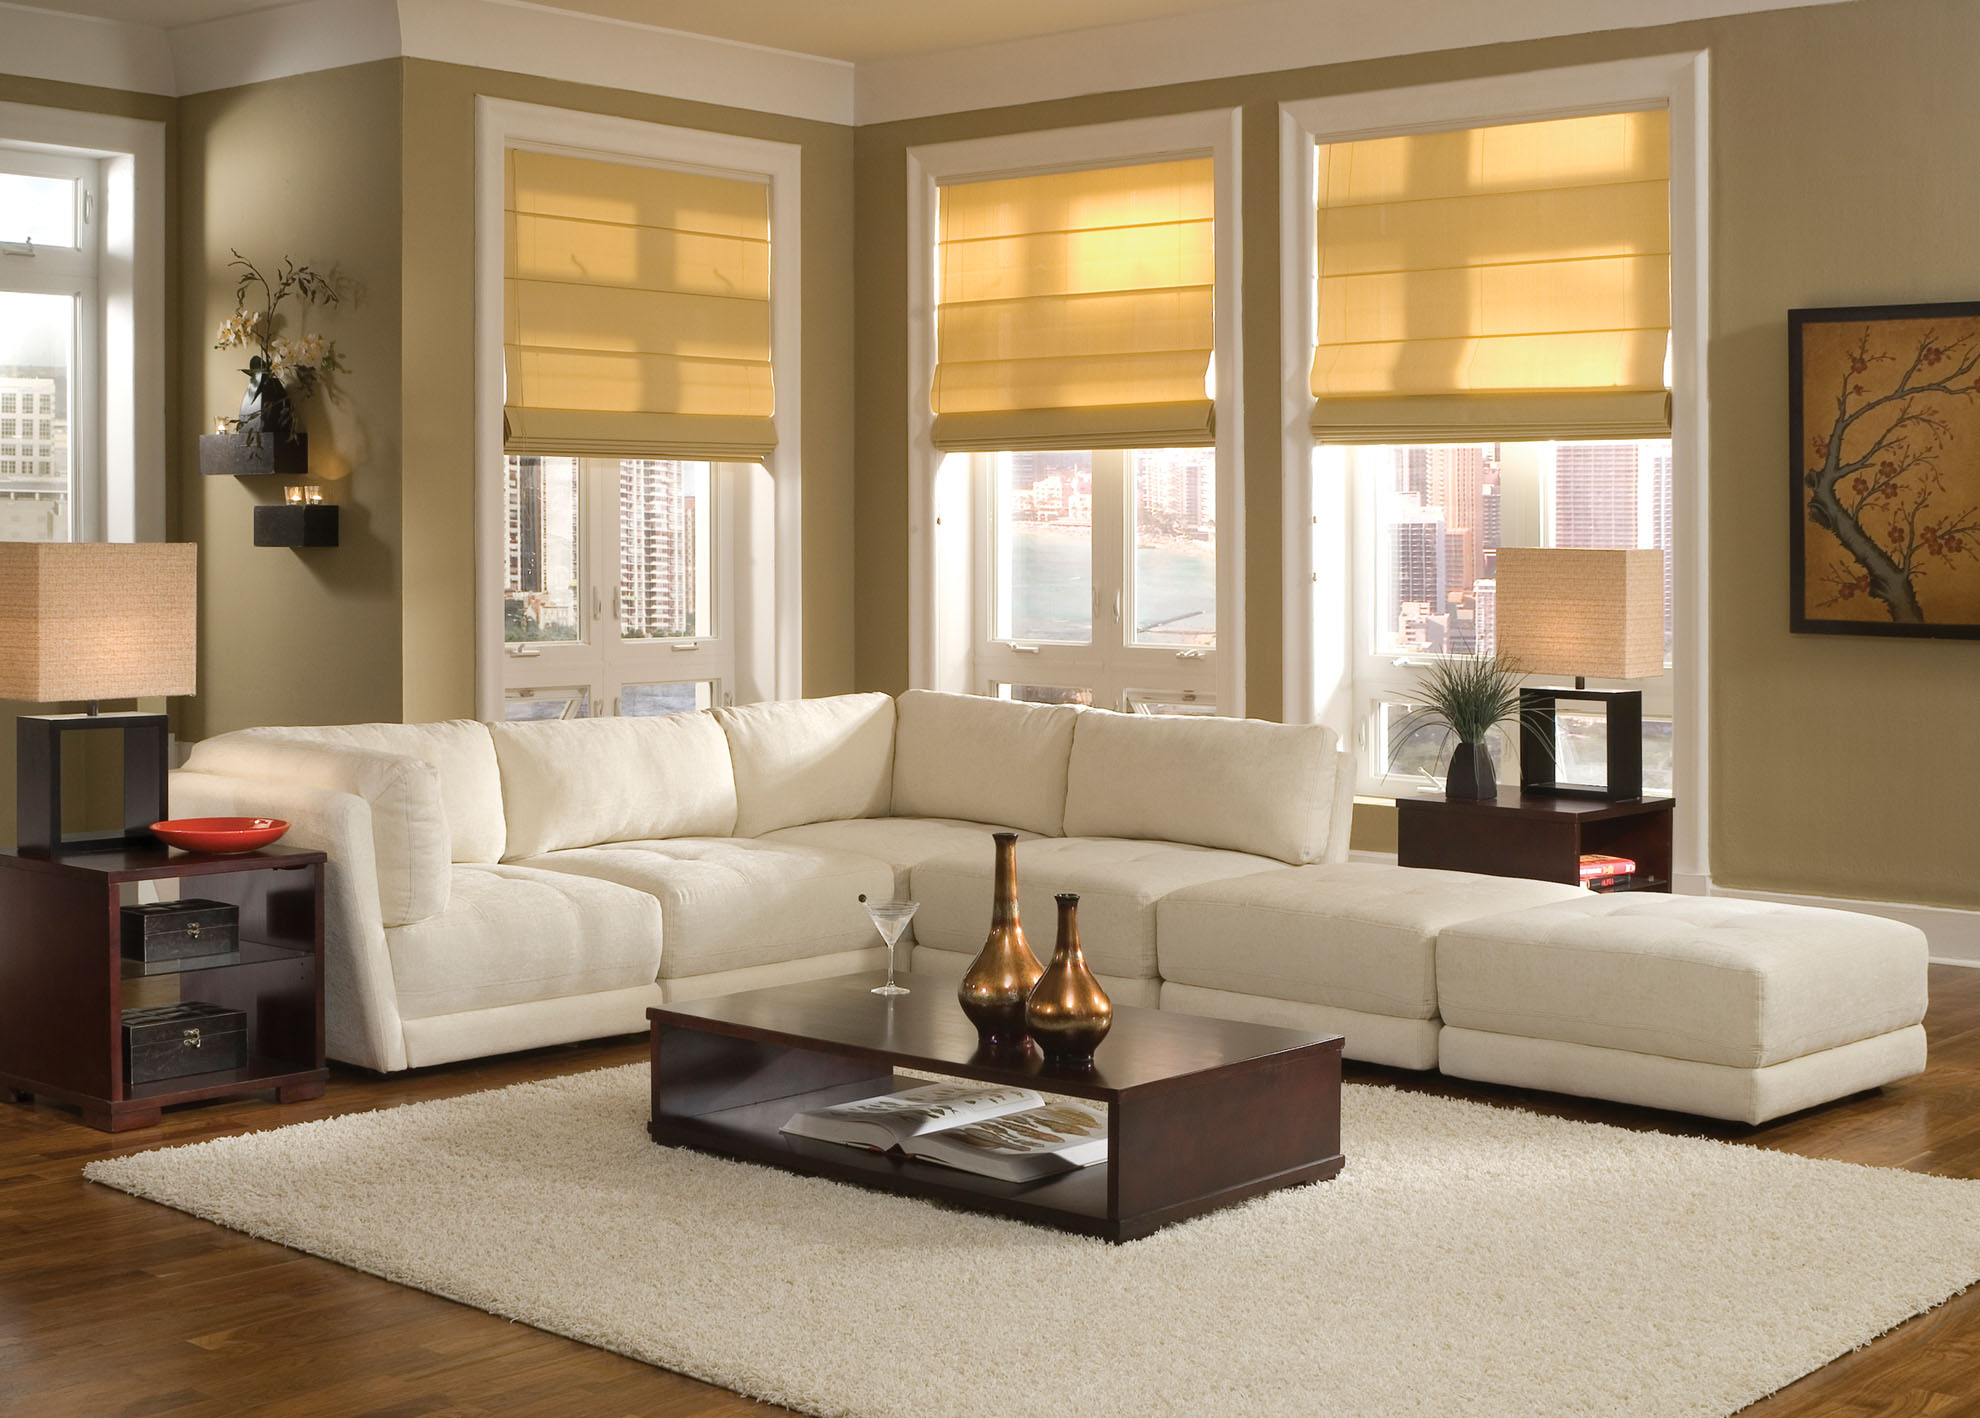 White Sofa Design Ideas & For Living Room